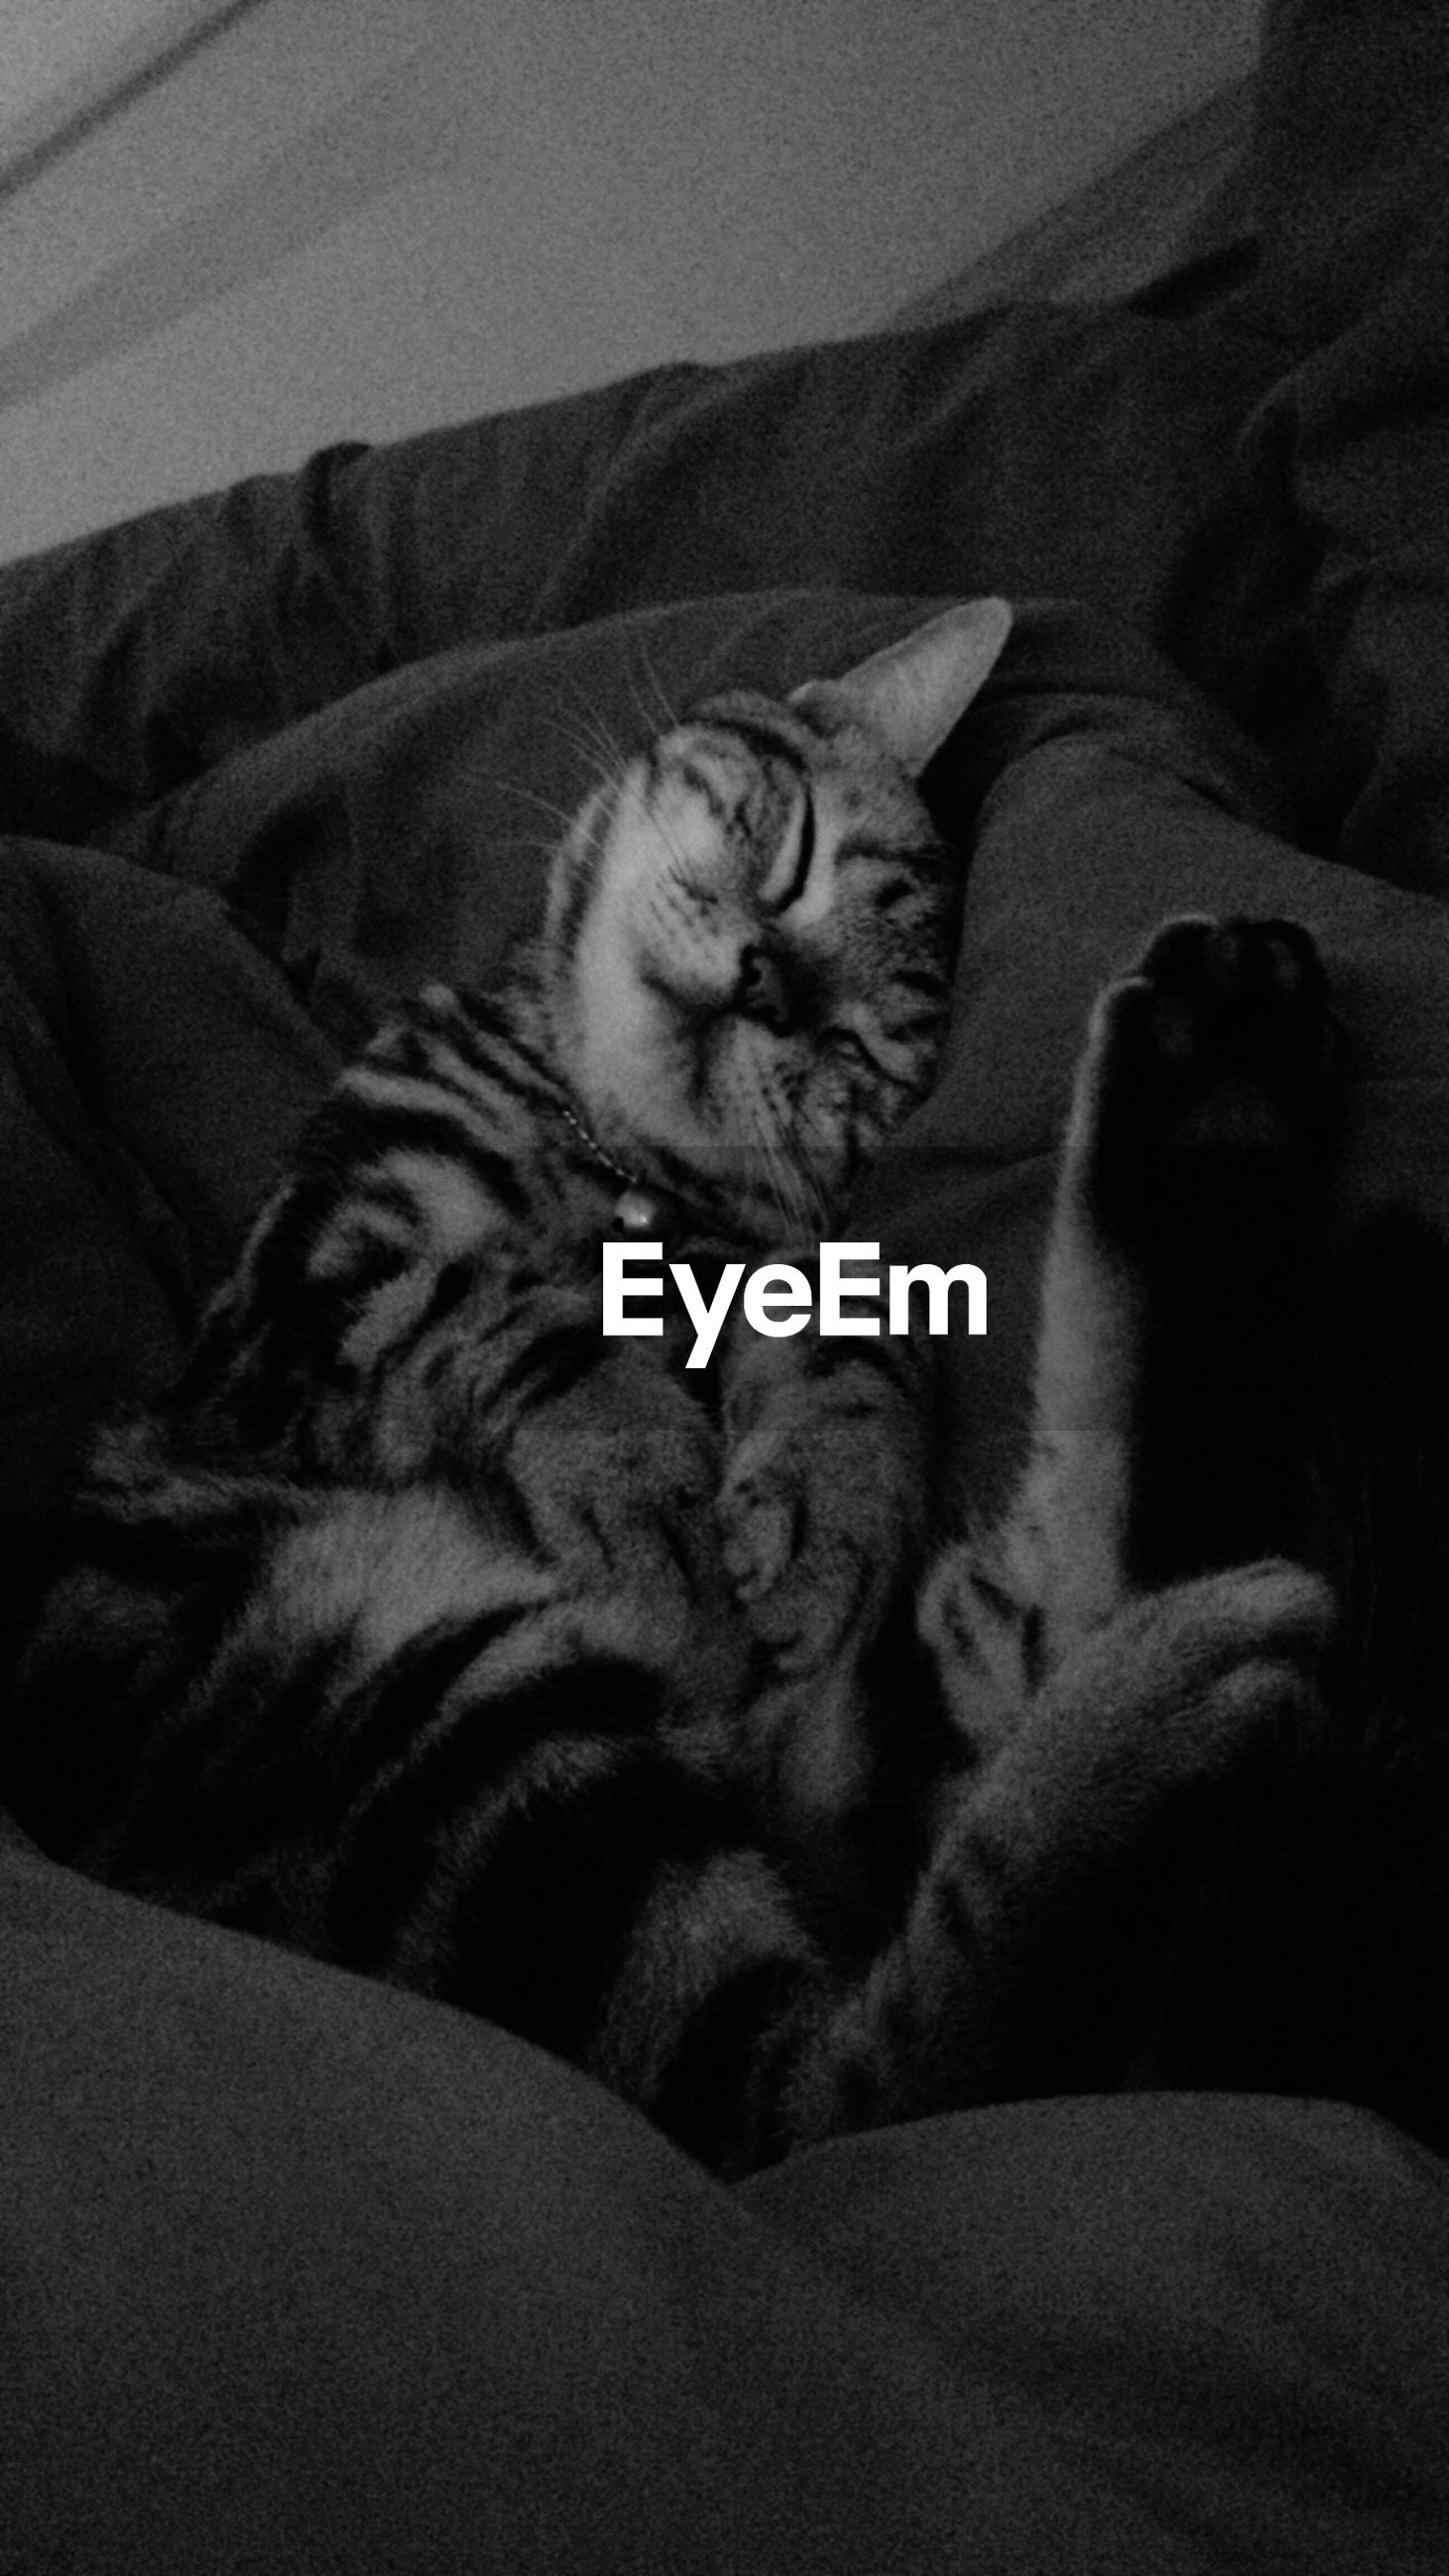 indoors, relaxation, sleeping, animal themes, resting, bed, lying down, one animal, pets, mammal, domestic animals, domestic cat, home interior, sofa, high angle view, cat, eyes closed, blanket, no people, comfortable